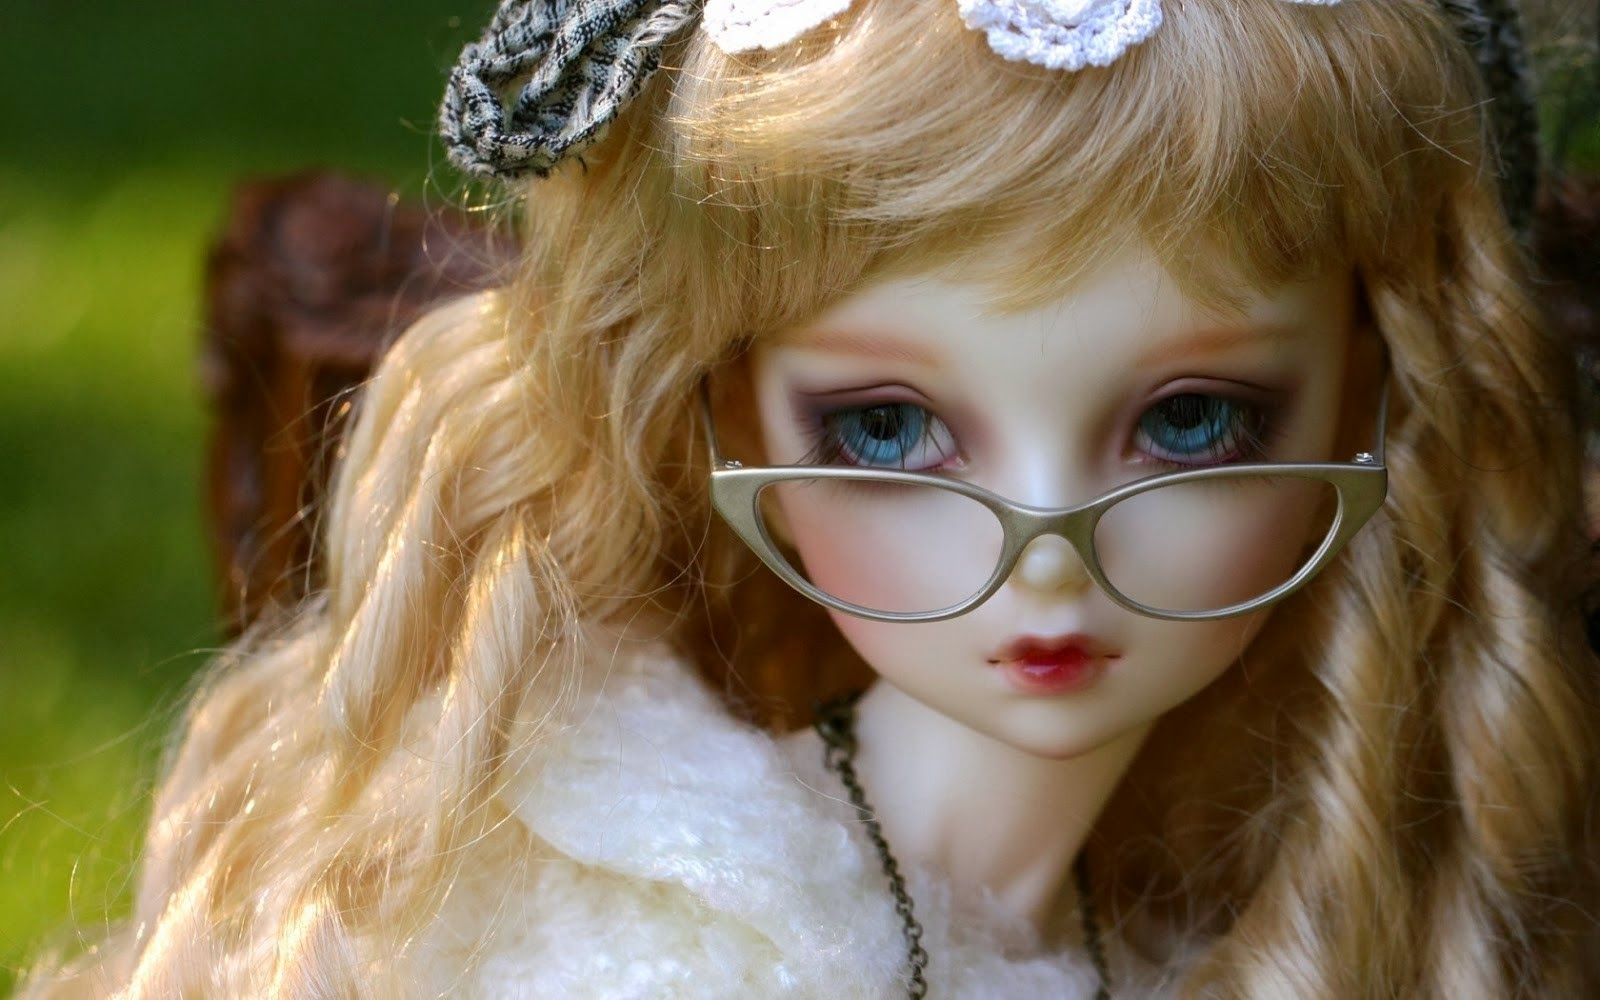 Cute wallpapers for fb profile picture - Cute barbie doll wallpaper hd ...